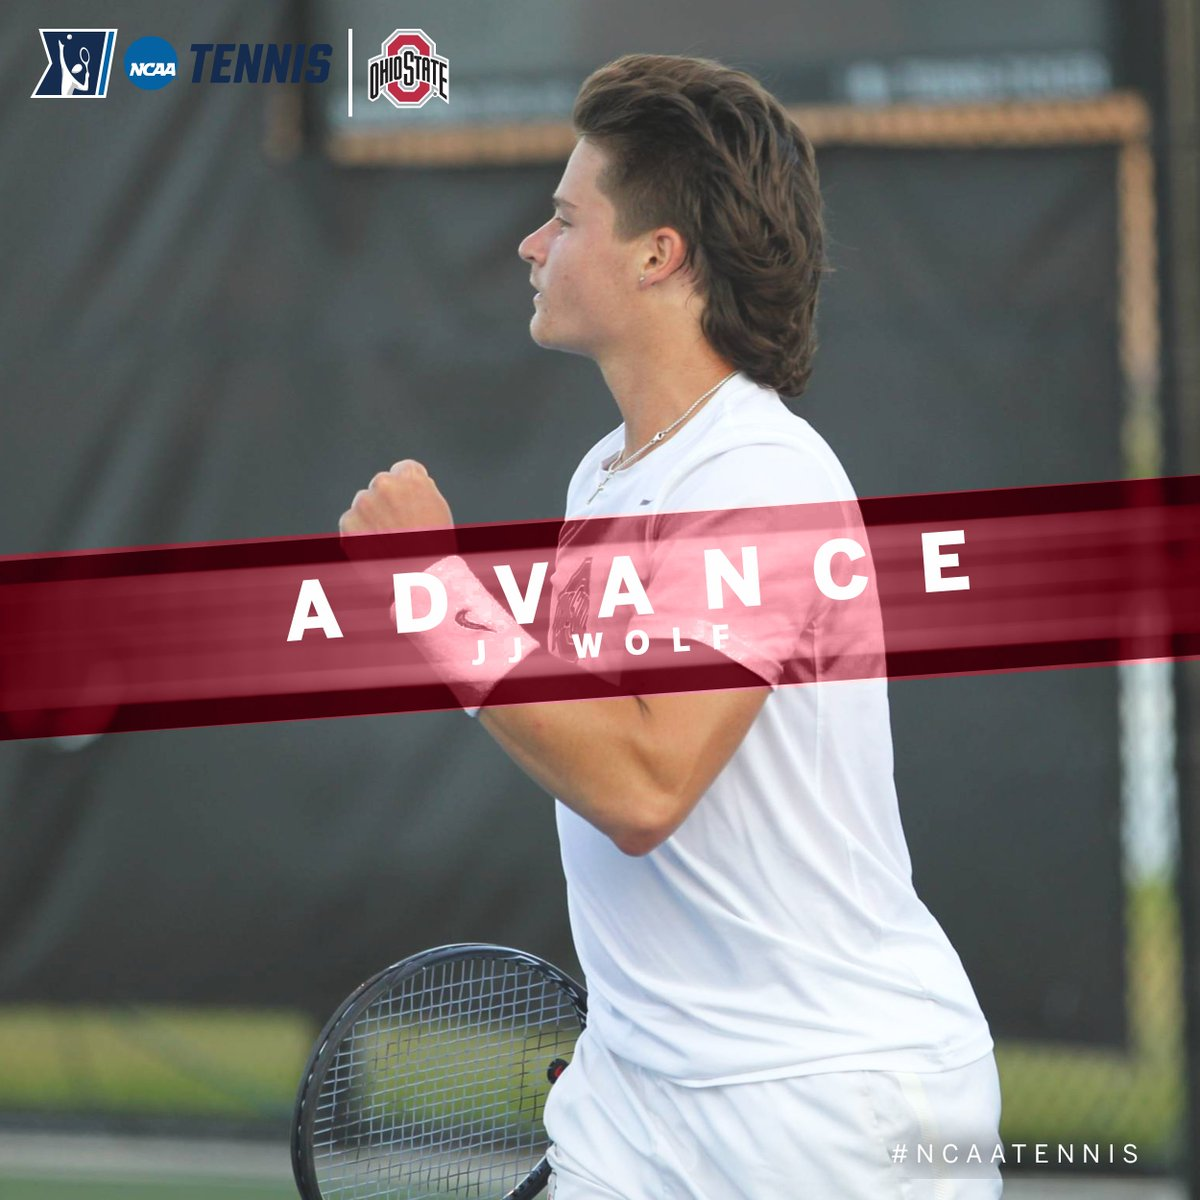 Wrapping up #B1GMTennis action at the @NCAATennis Singles Championship tonight, #2 seed JJ Wolf of @OhioStateMTEN defeated Matej Vocel of Oklahoma State, 4-6, 6-2, 7-5 to move to the Round of 16.